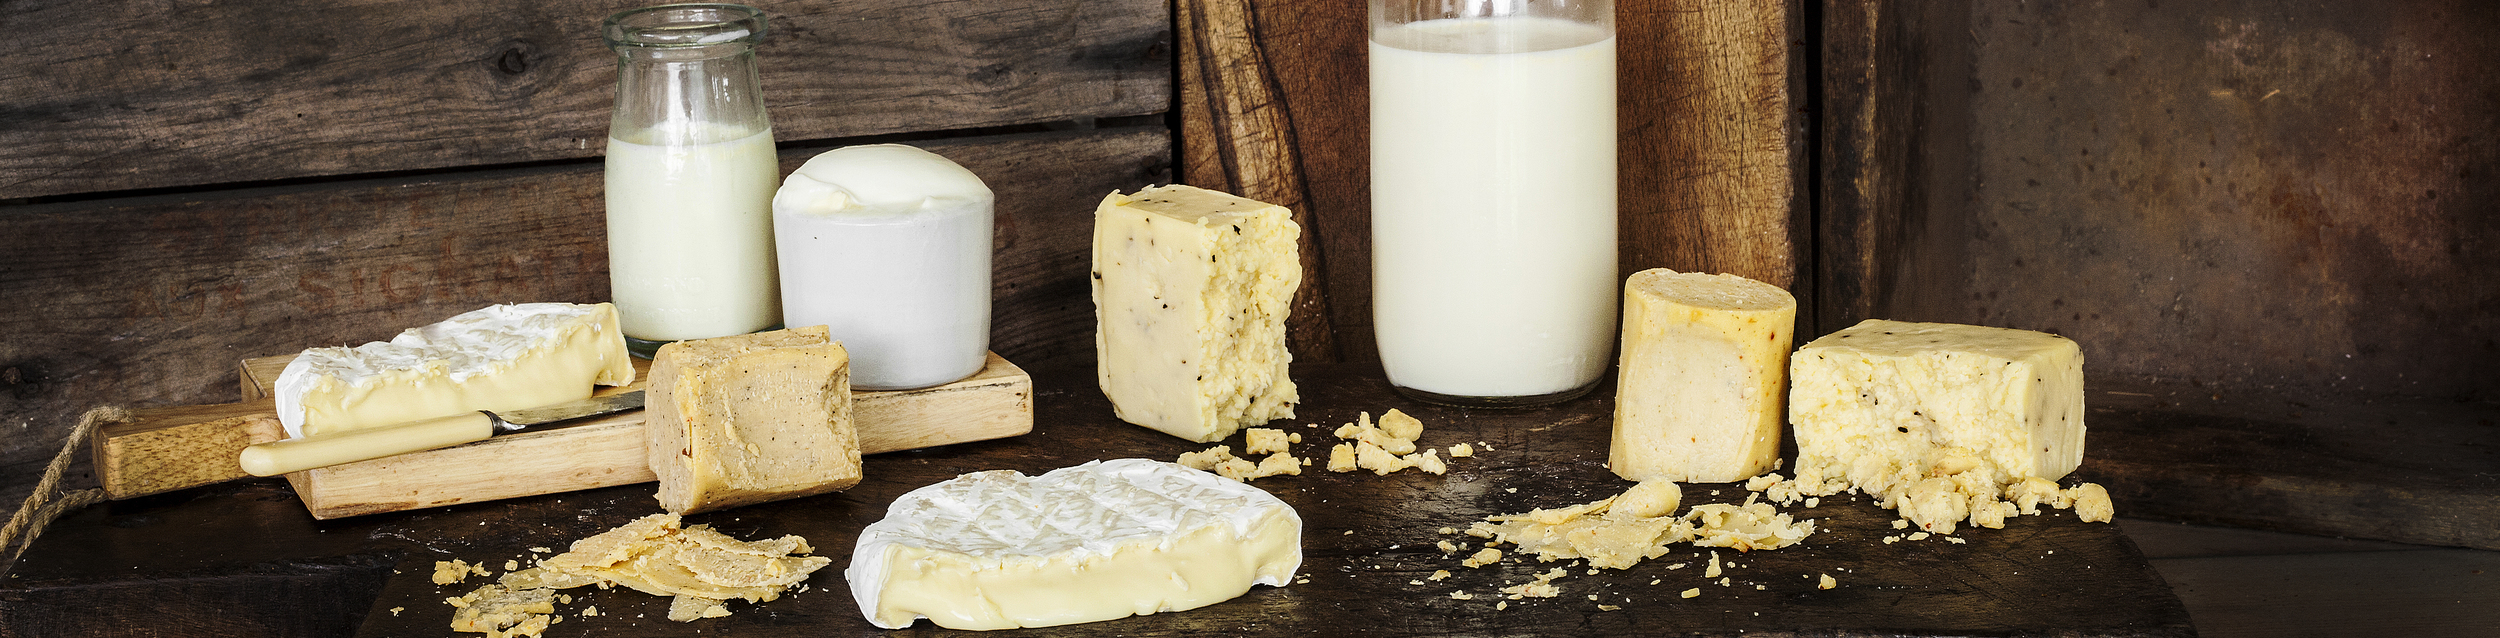 Food Connect's range of locally sourced, ethically traded dairy products